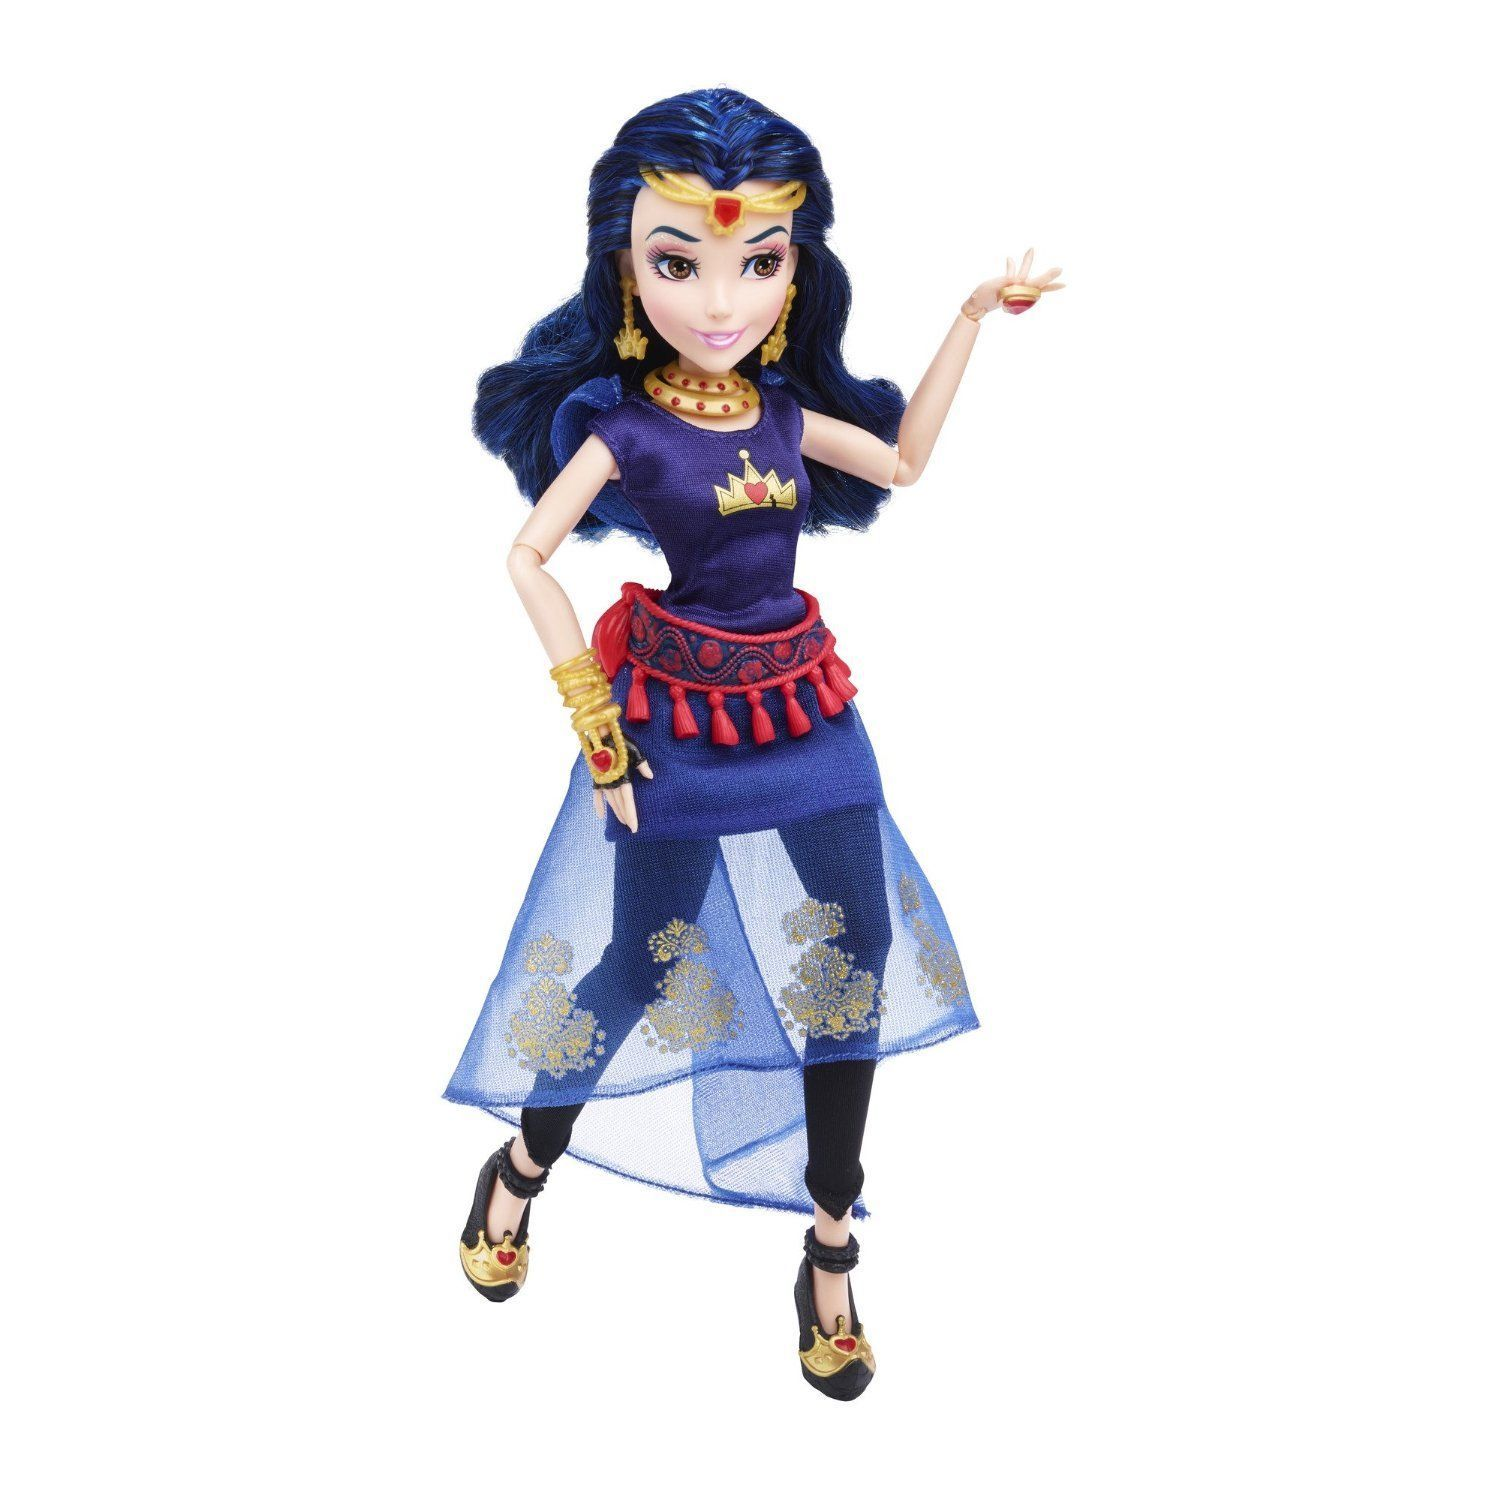 Disney Descendants Genie Chic Villain Evie Doll in Blue, Hasbro, 6+